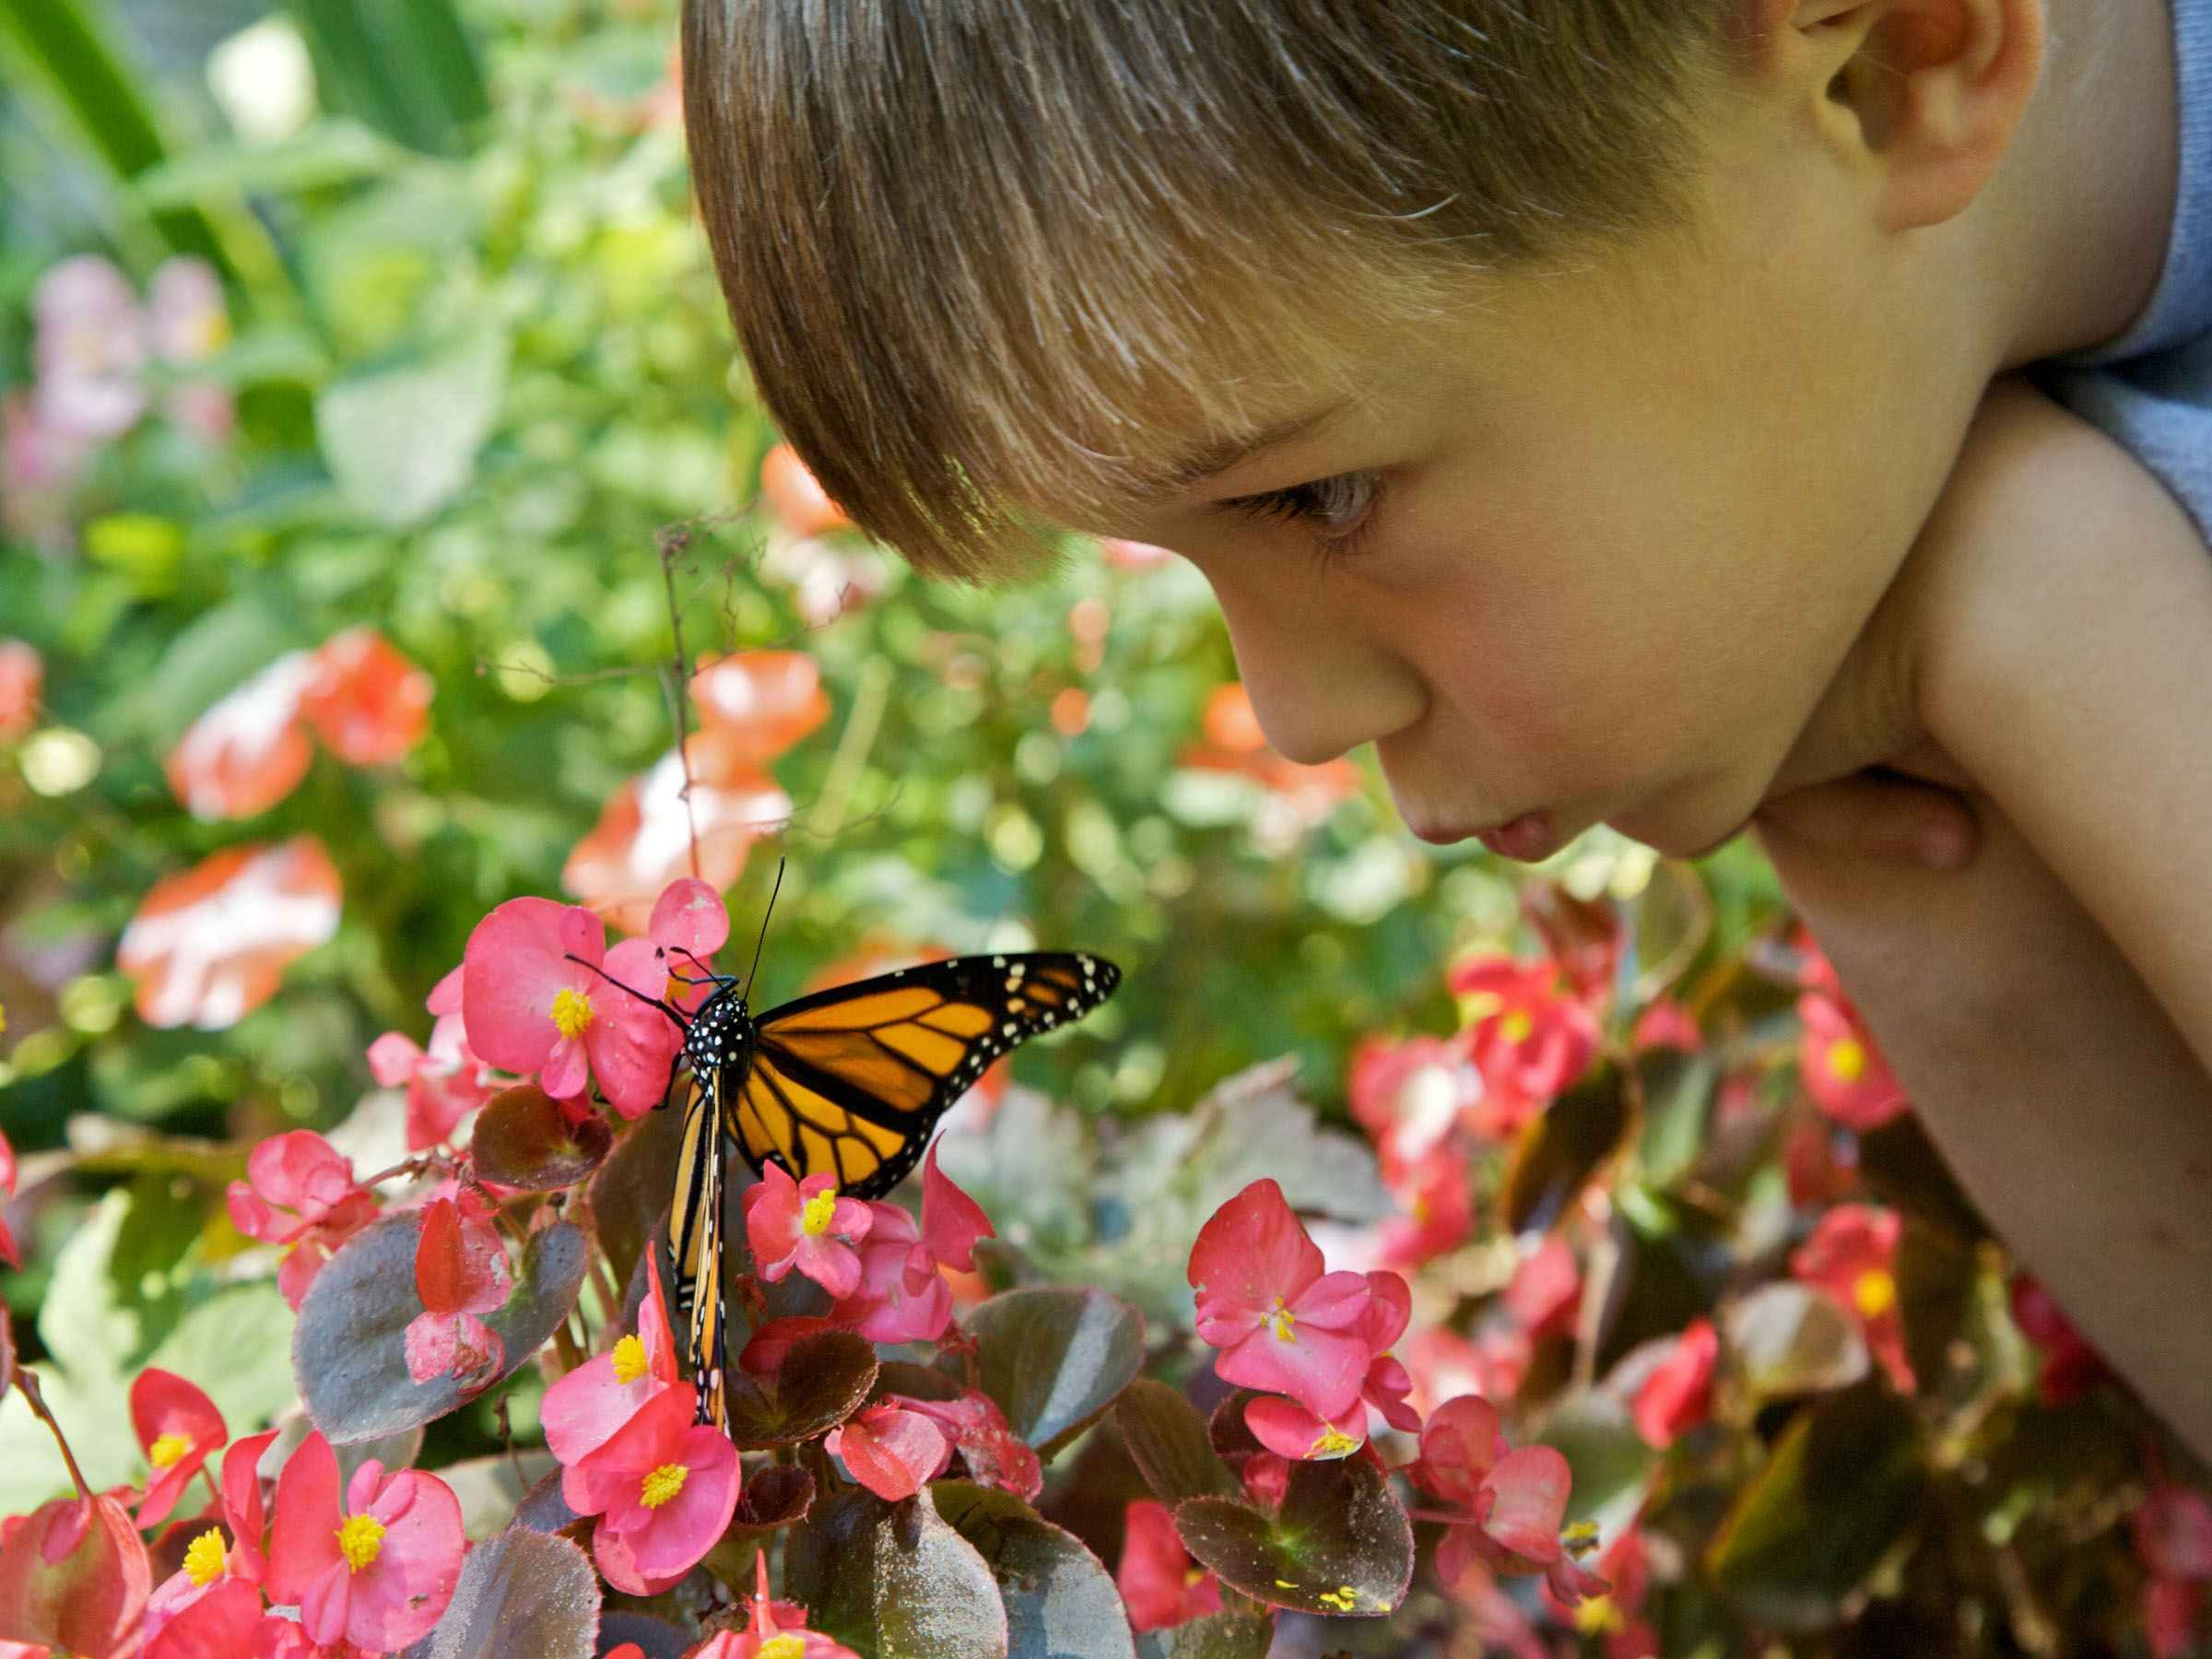 How To Support Send Children In Early Years Early Years Careers Family Garden Exercise For Kids Nature Deficit Disorder